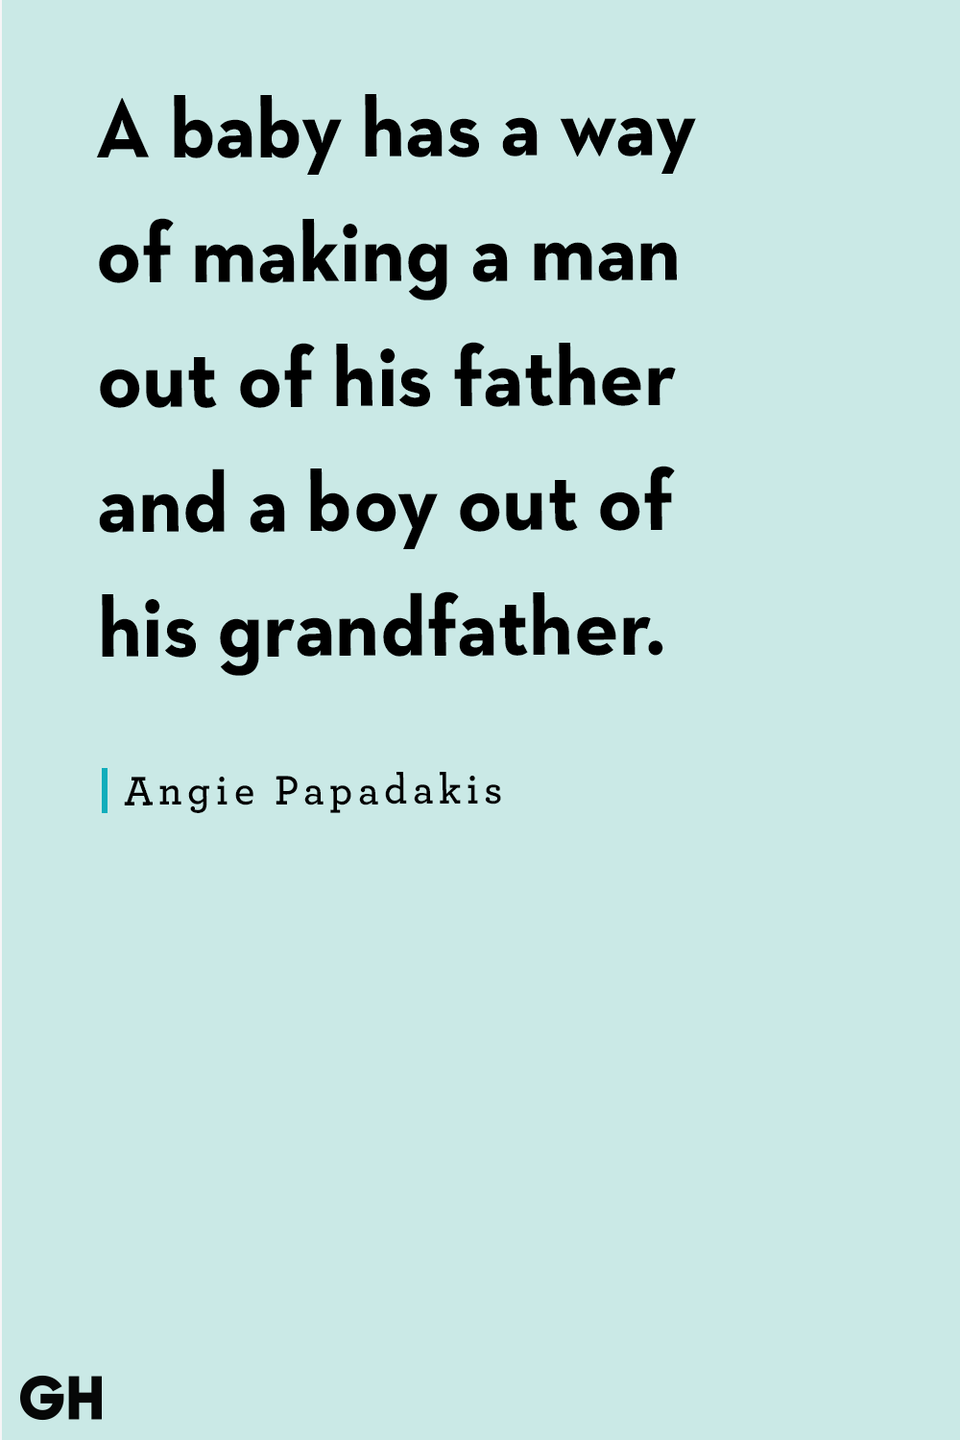 <p>A baby has a way of making a man out of his father and a boy out of his grandfather.</p>